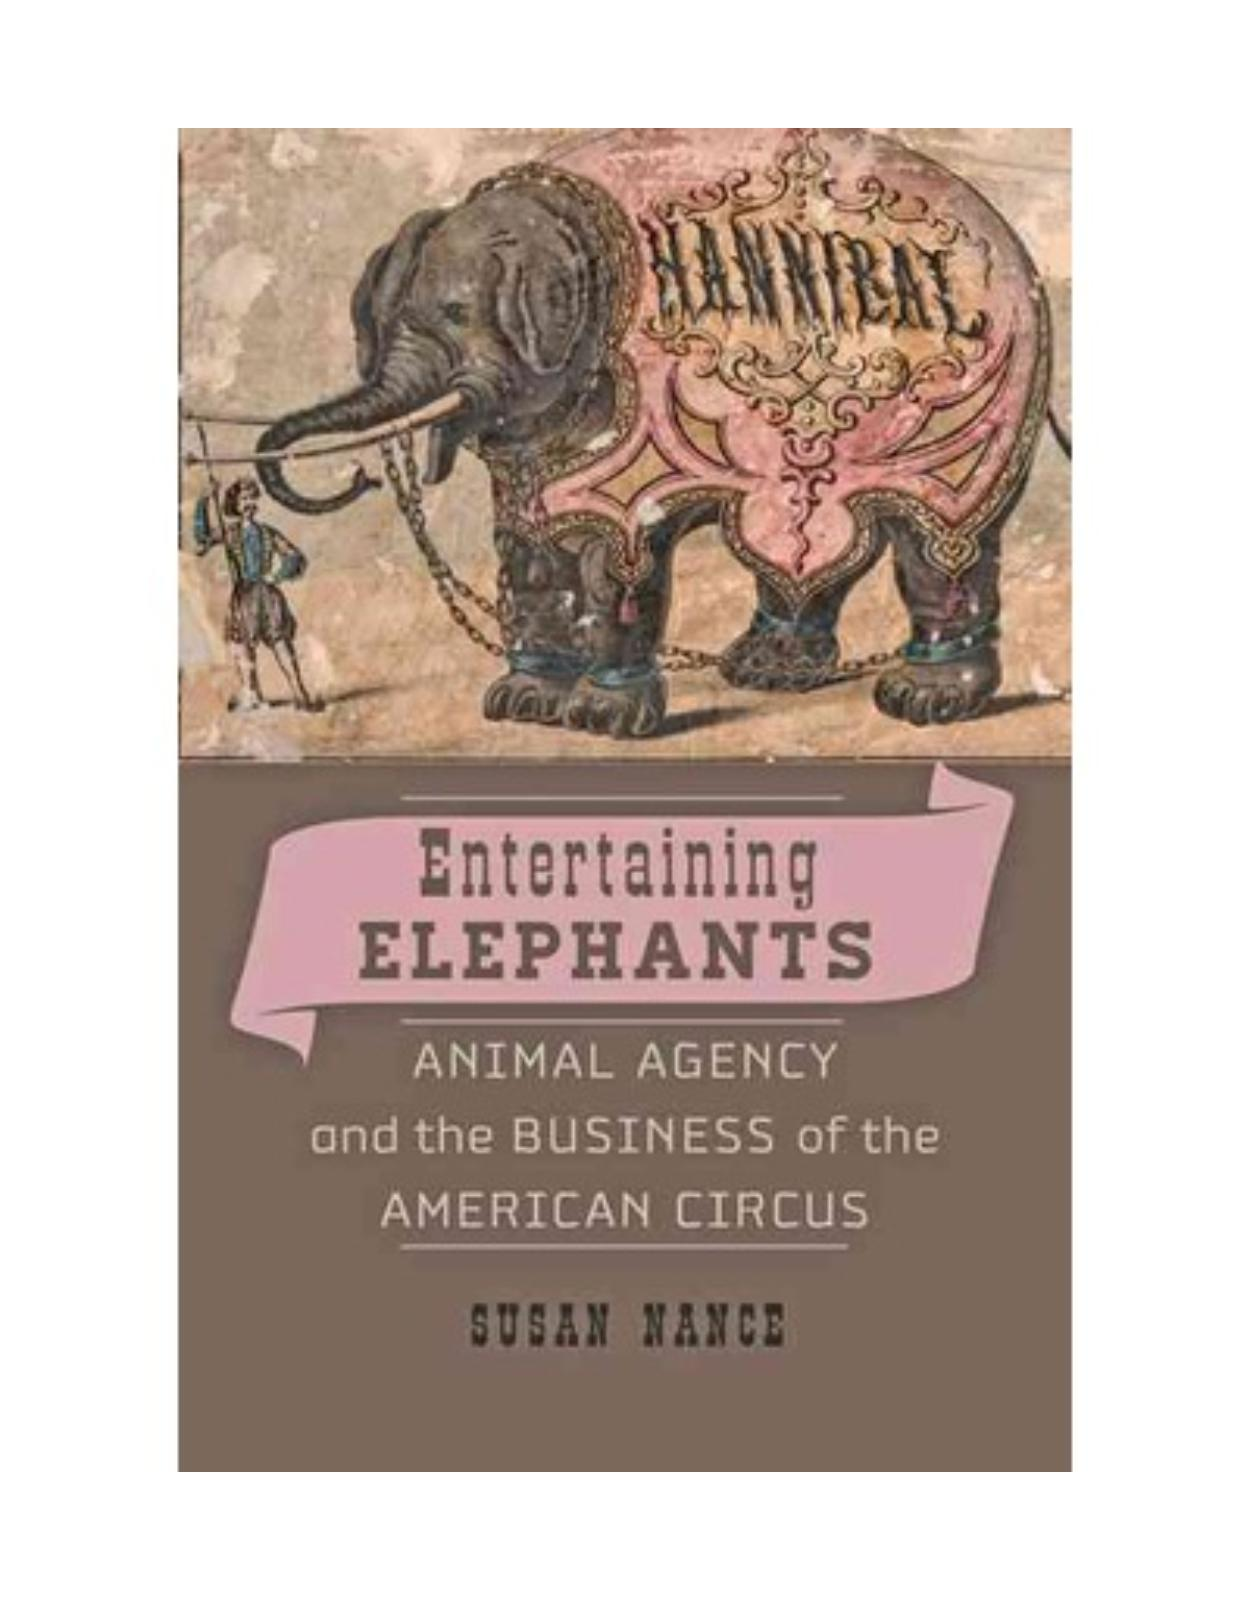 Entertaining Elephants. Animal Agency and the Business of the American Circus